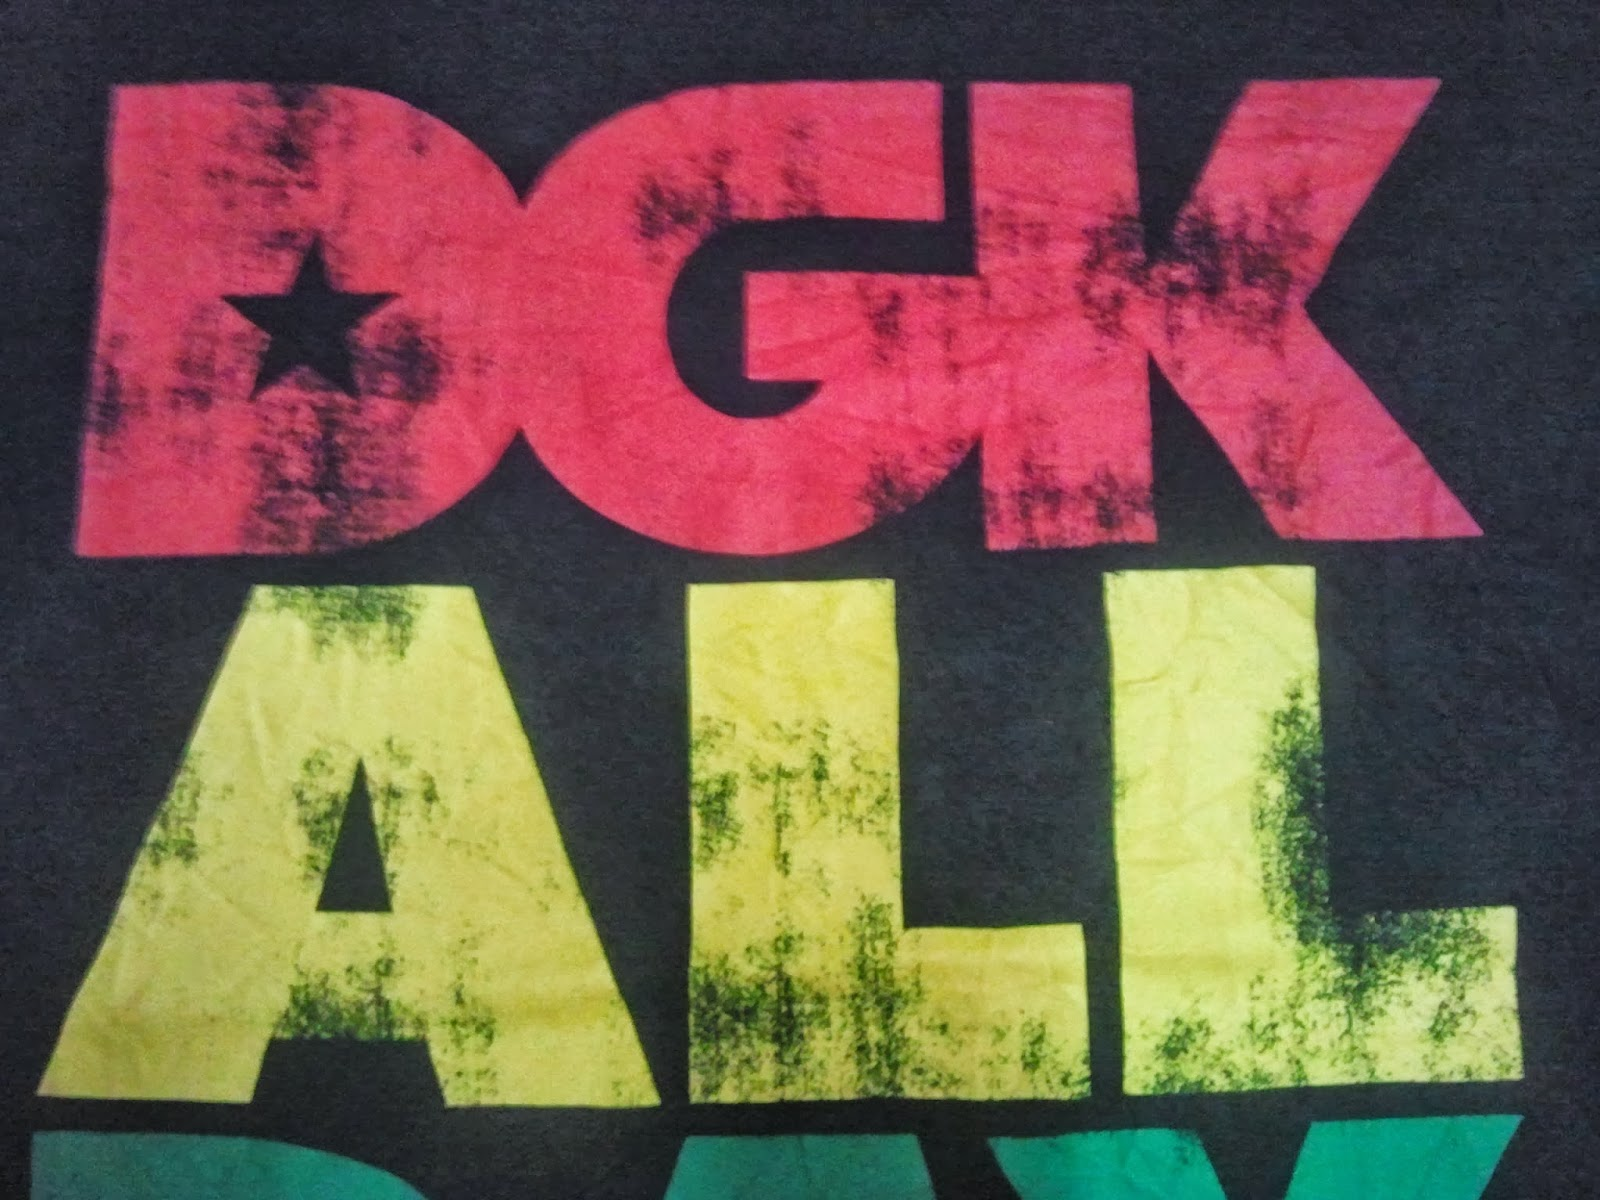 Dgk All Day Logo Wallpaper wl 1827 dgk all day by the 1600x1200